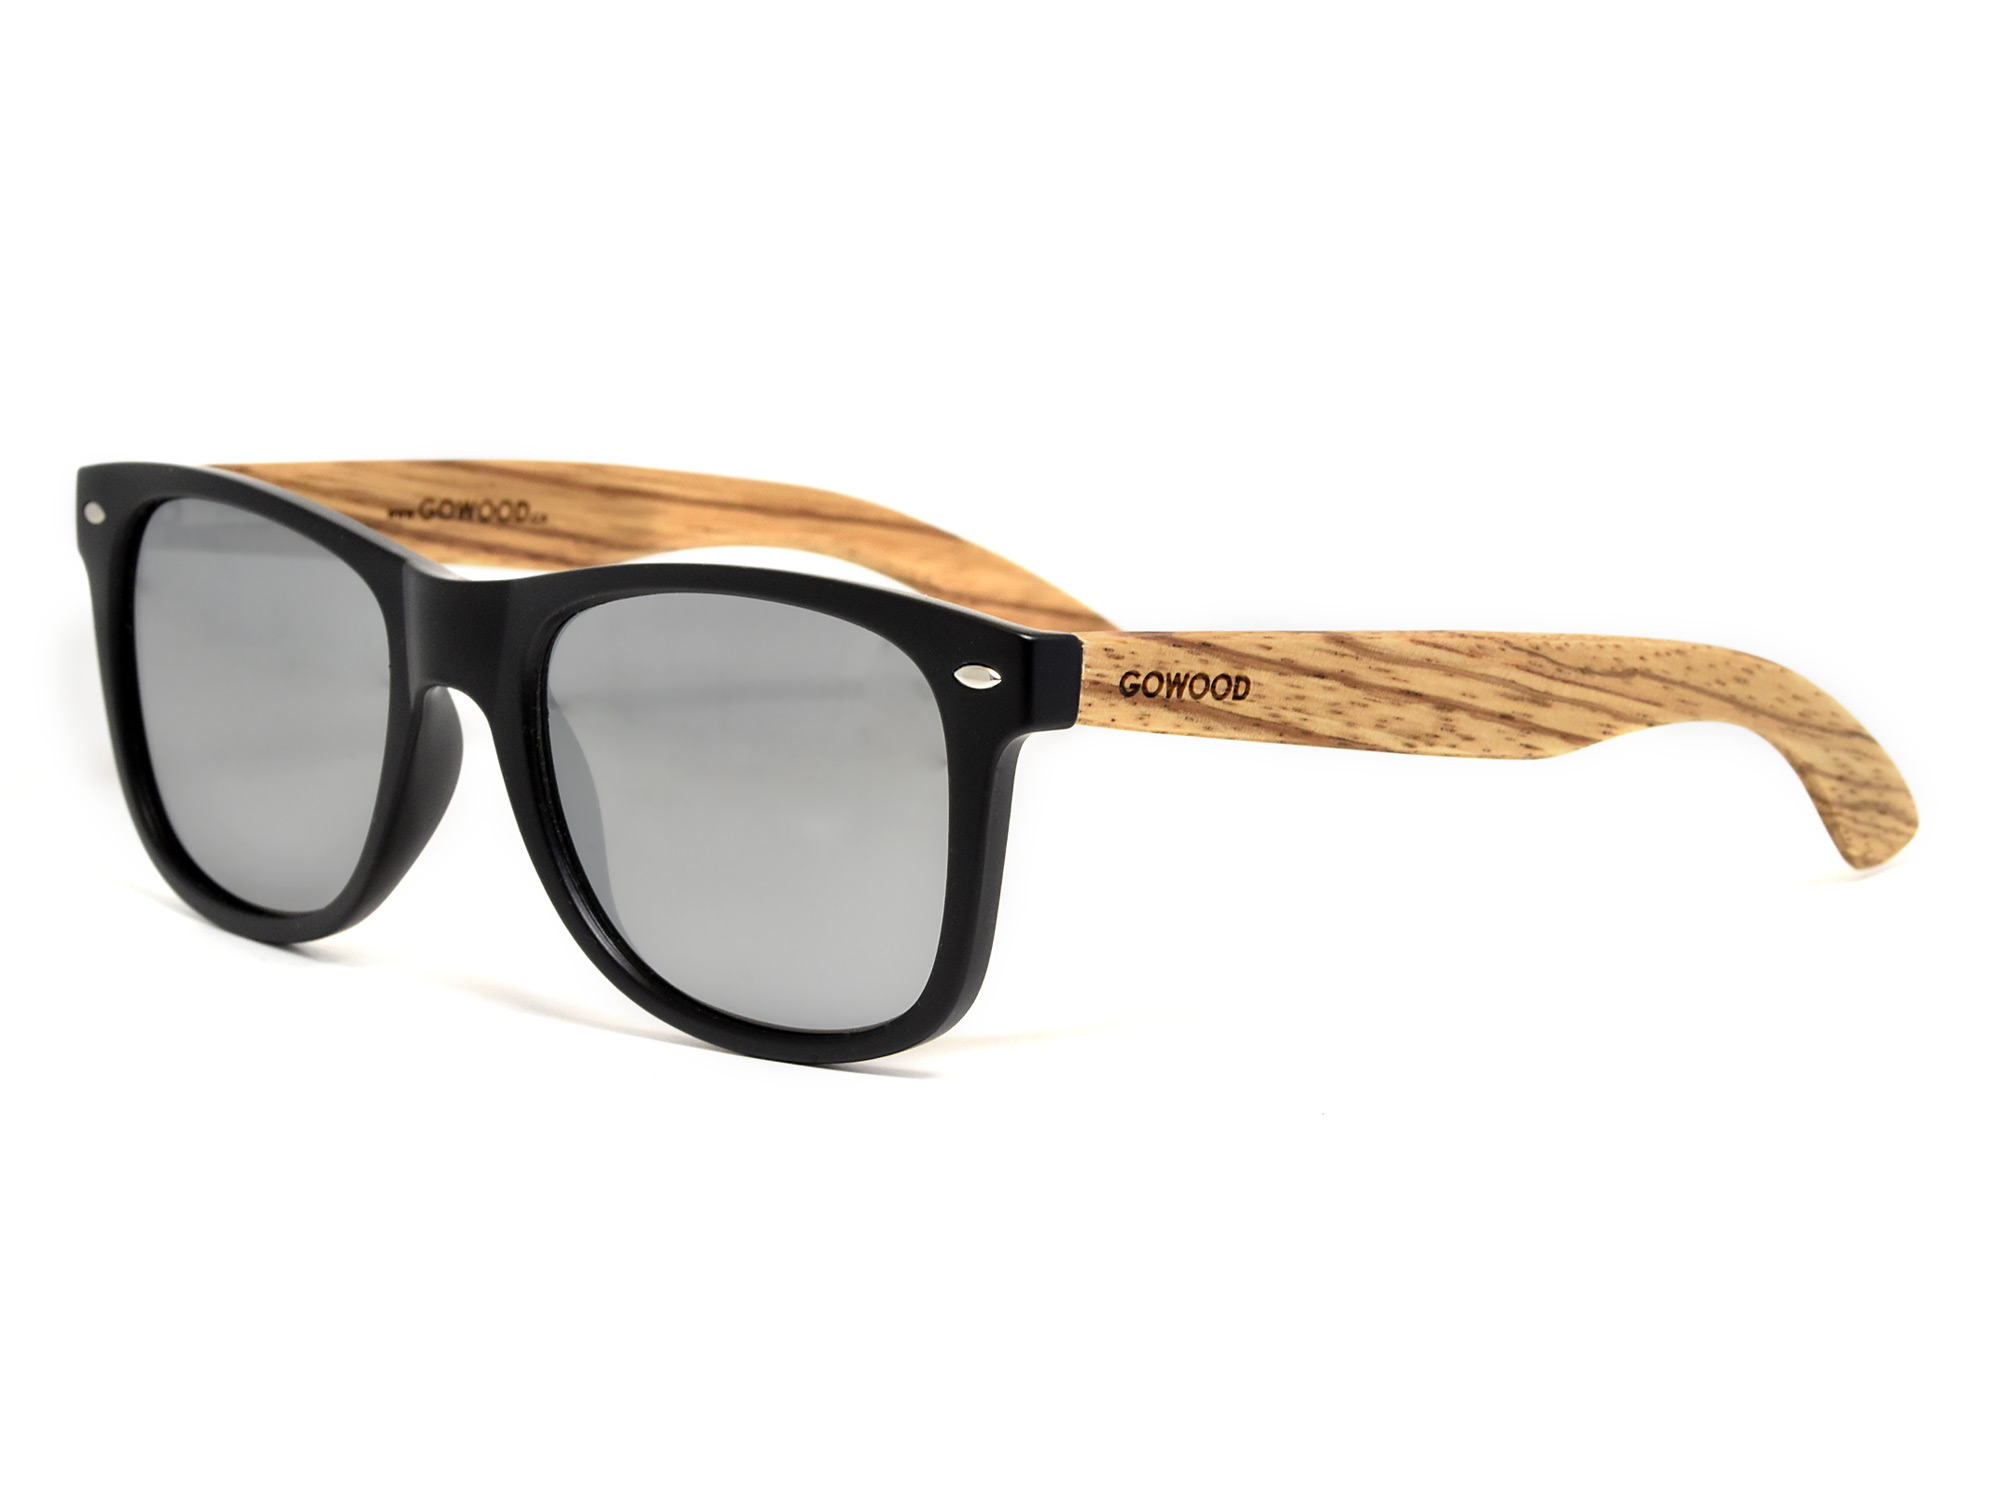 Zebra wood sunglasses with silver mirrored lenses